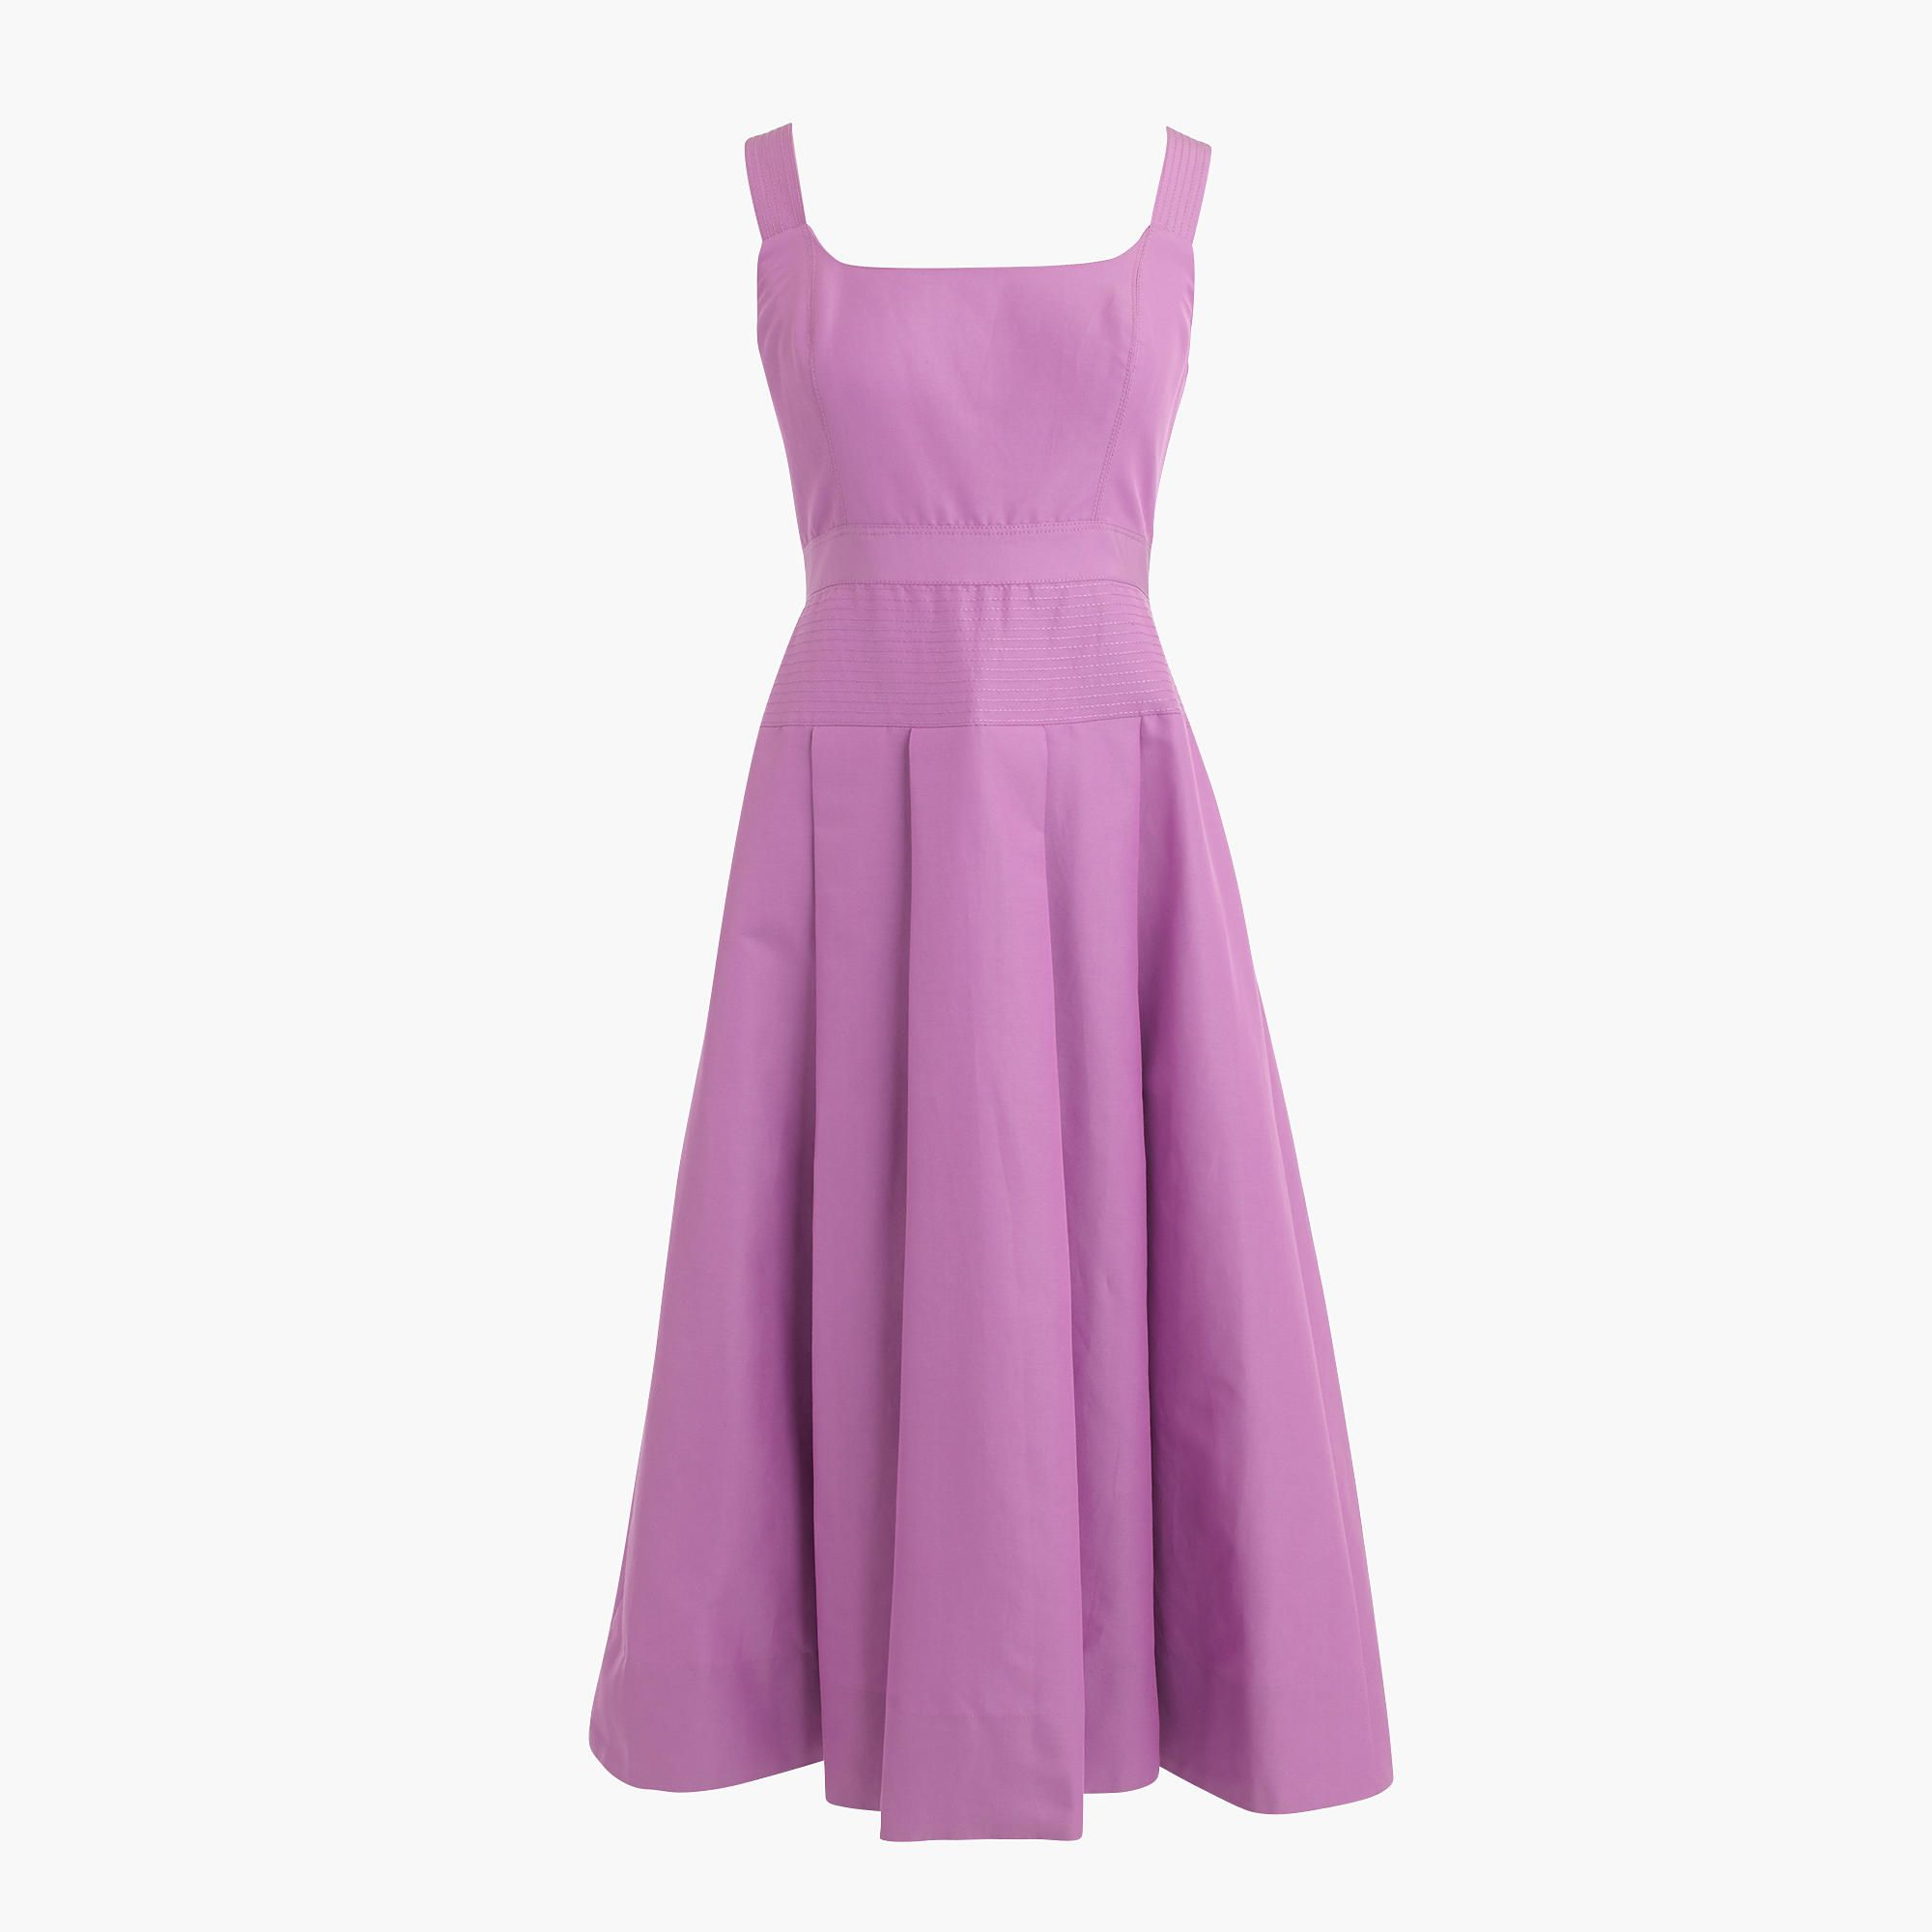 Pin by annie shannon on what i love pinterest dresses dress